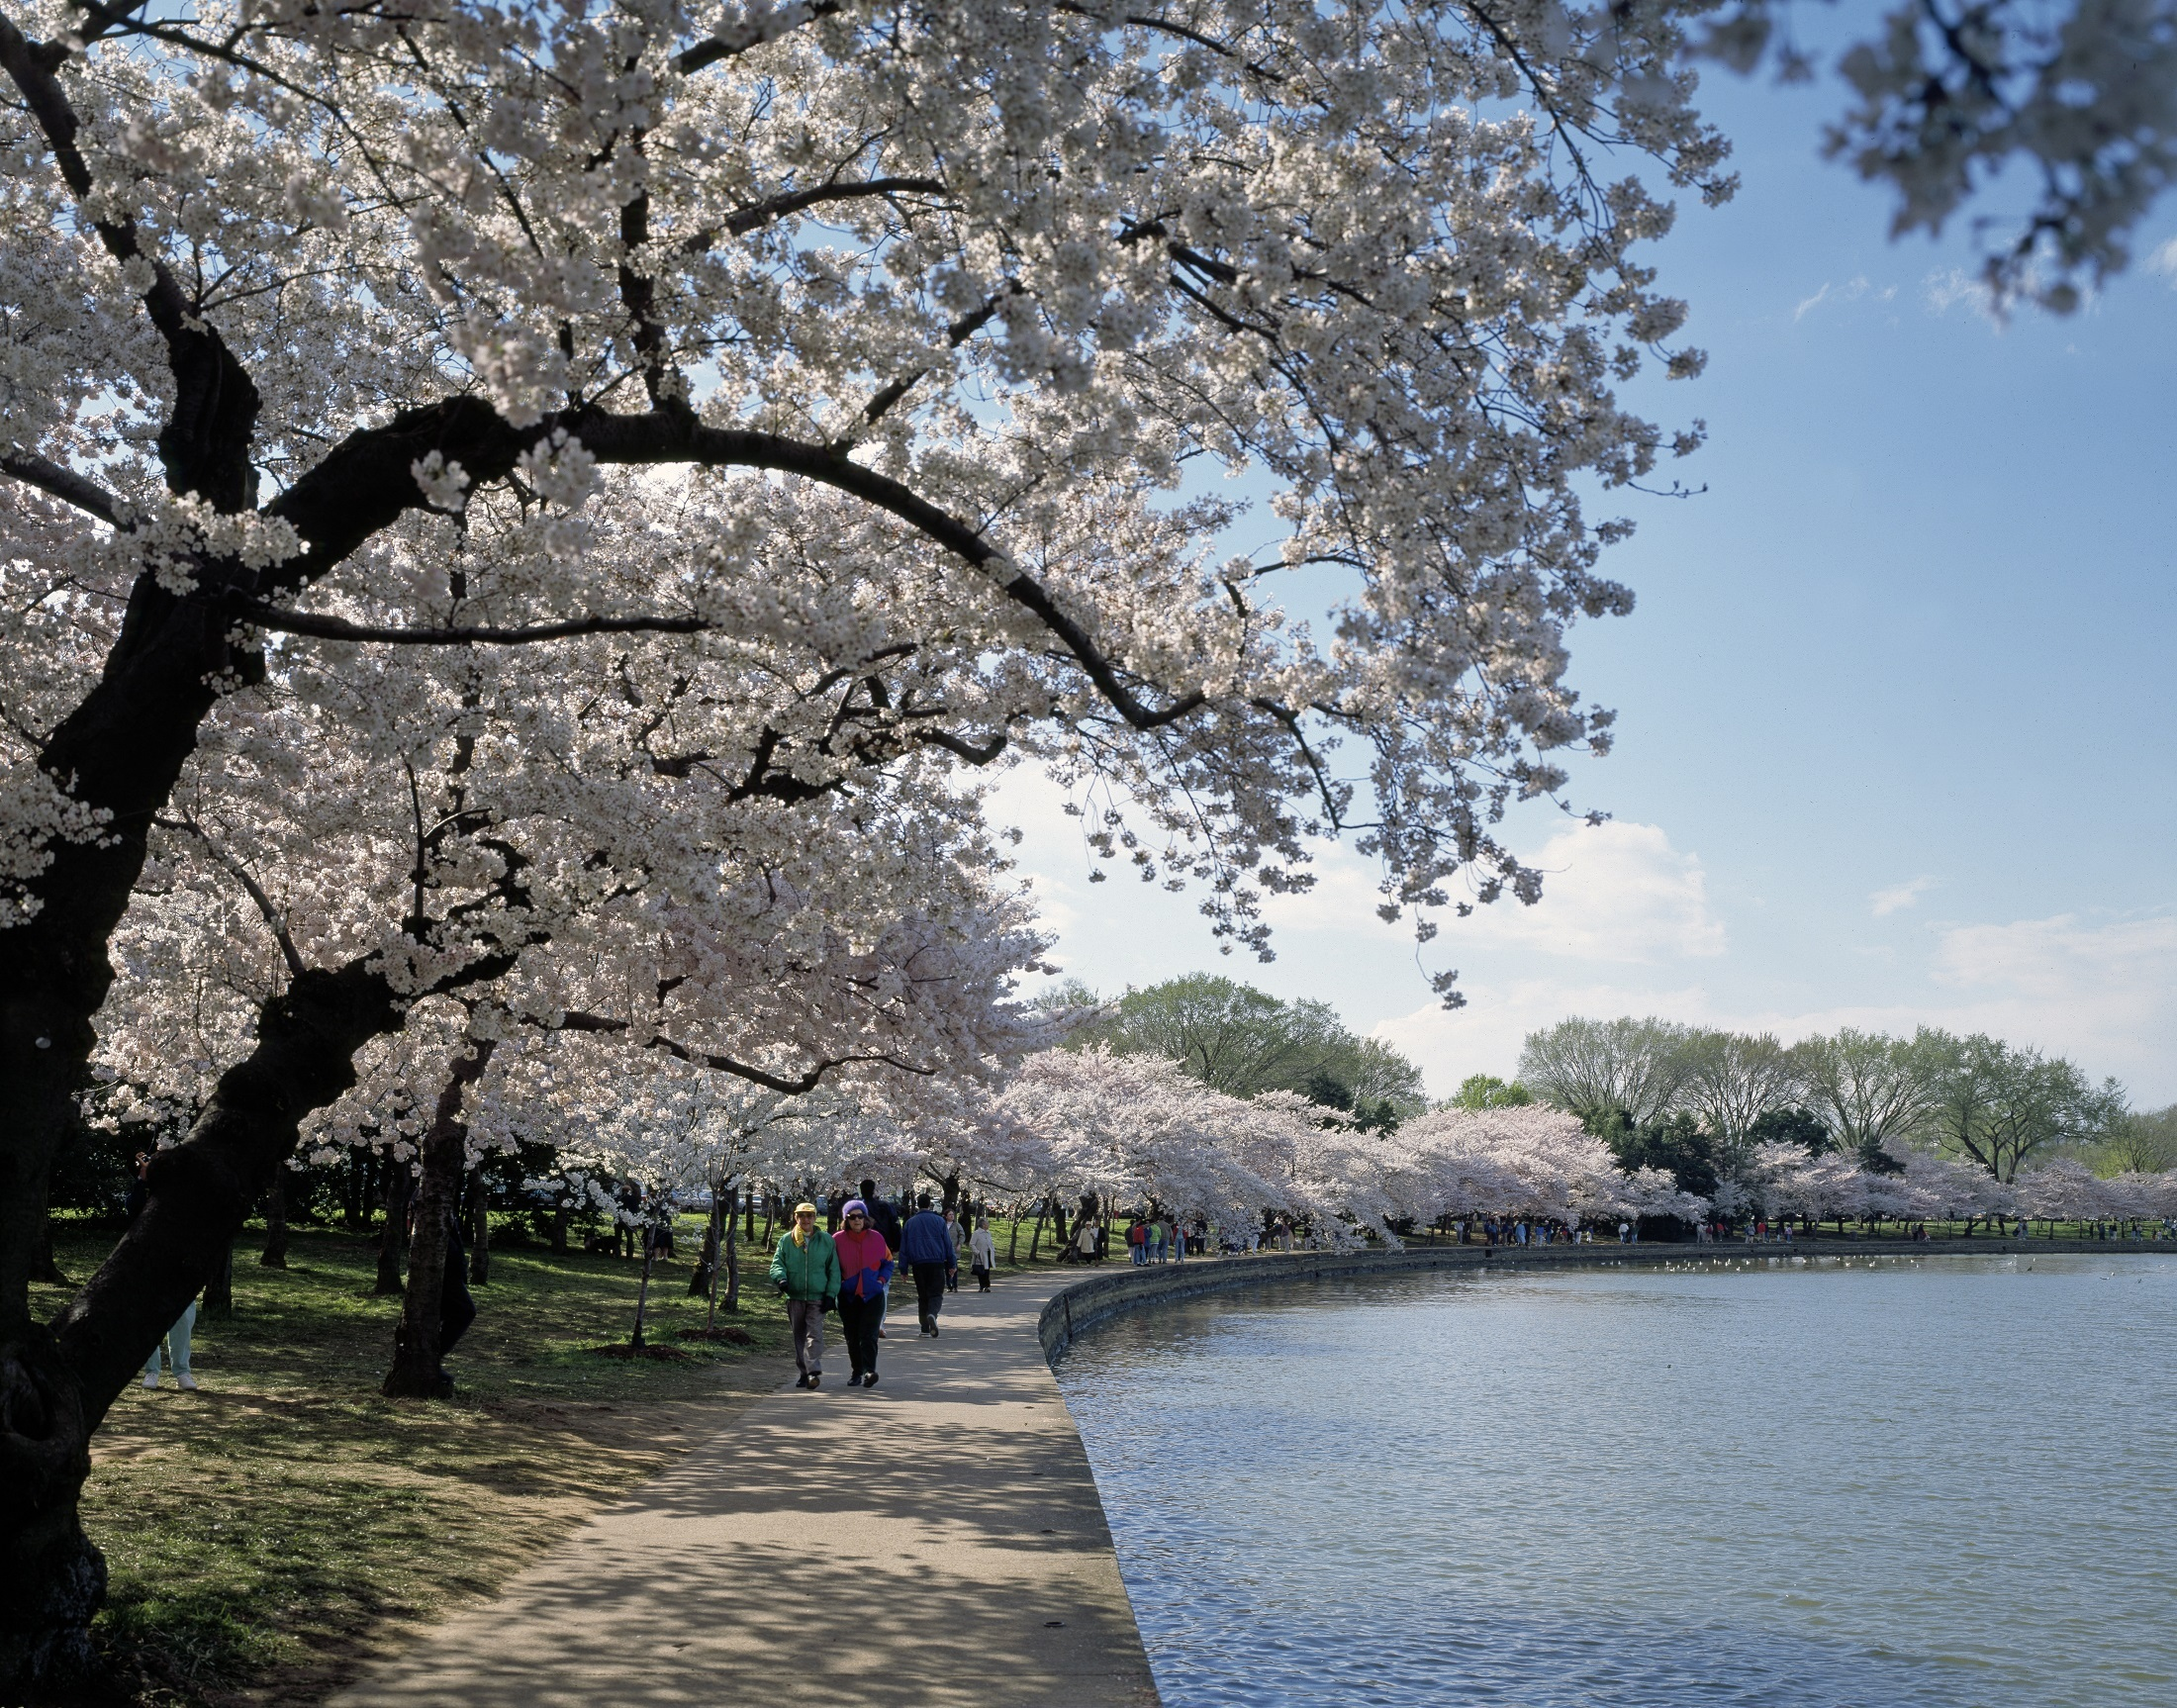 Cherry Trees, Activity, Cherry, Fresh, Human, HQ Photo